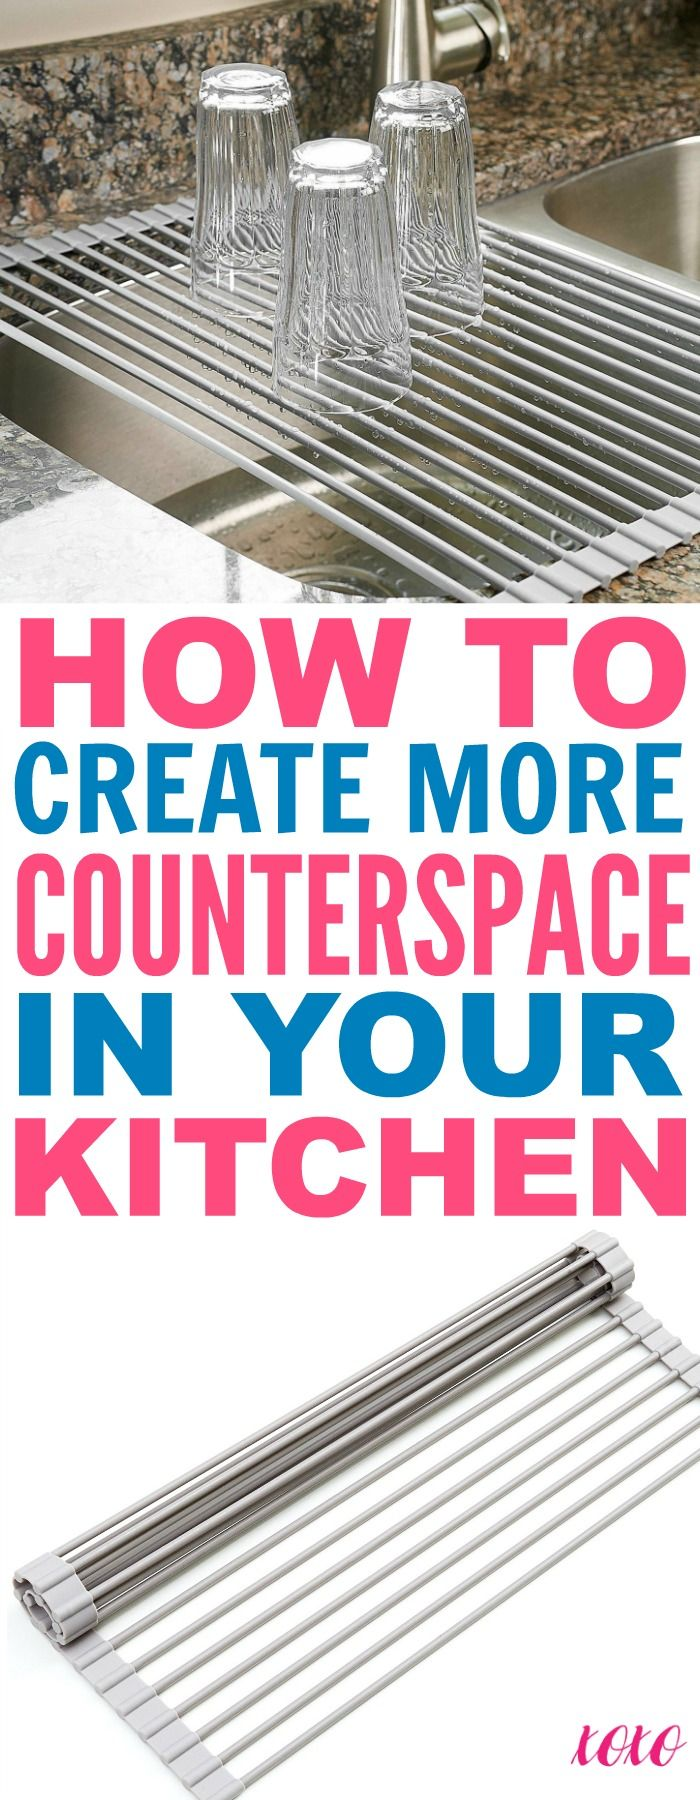 9 Simple Ways To Create More Counter Space In Your Tiny Kitchen - That Vintage Life